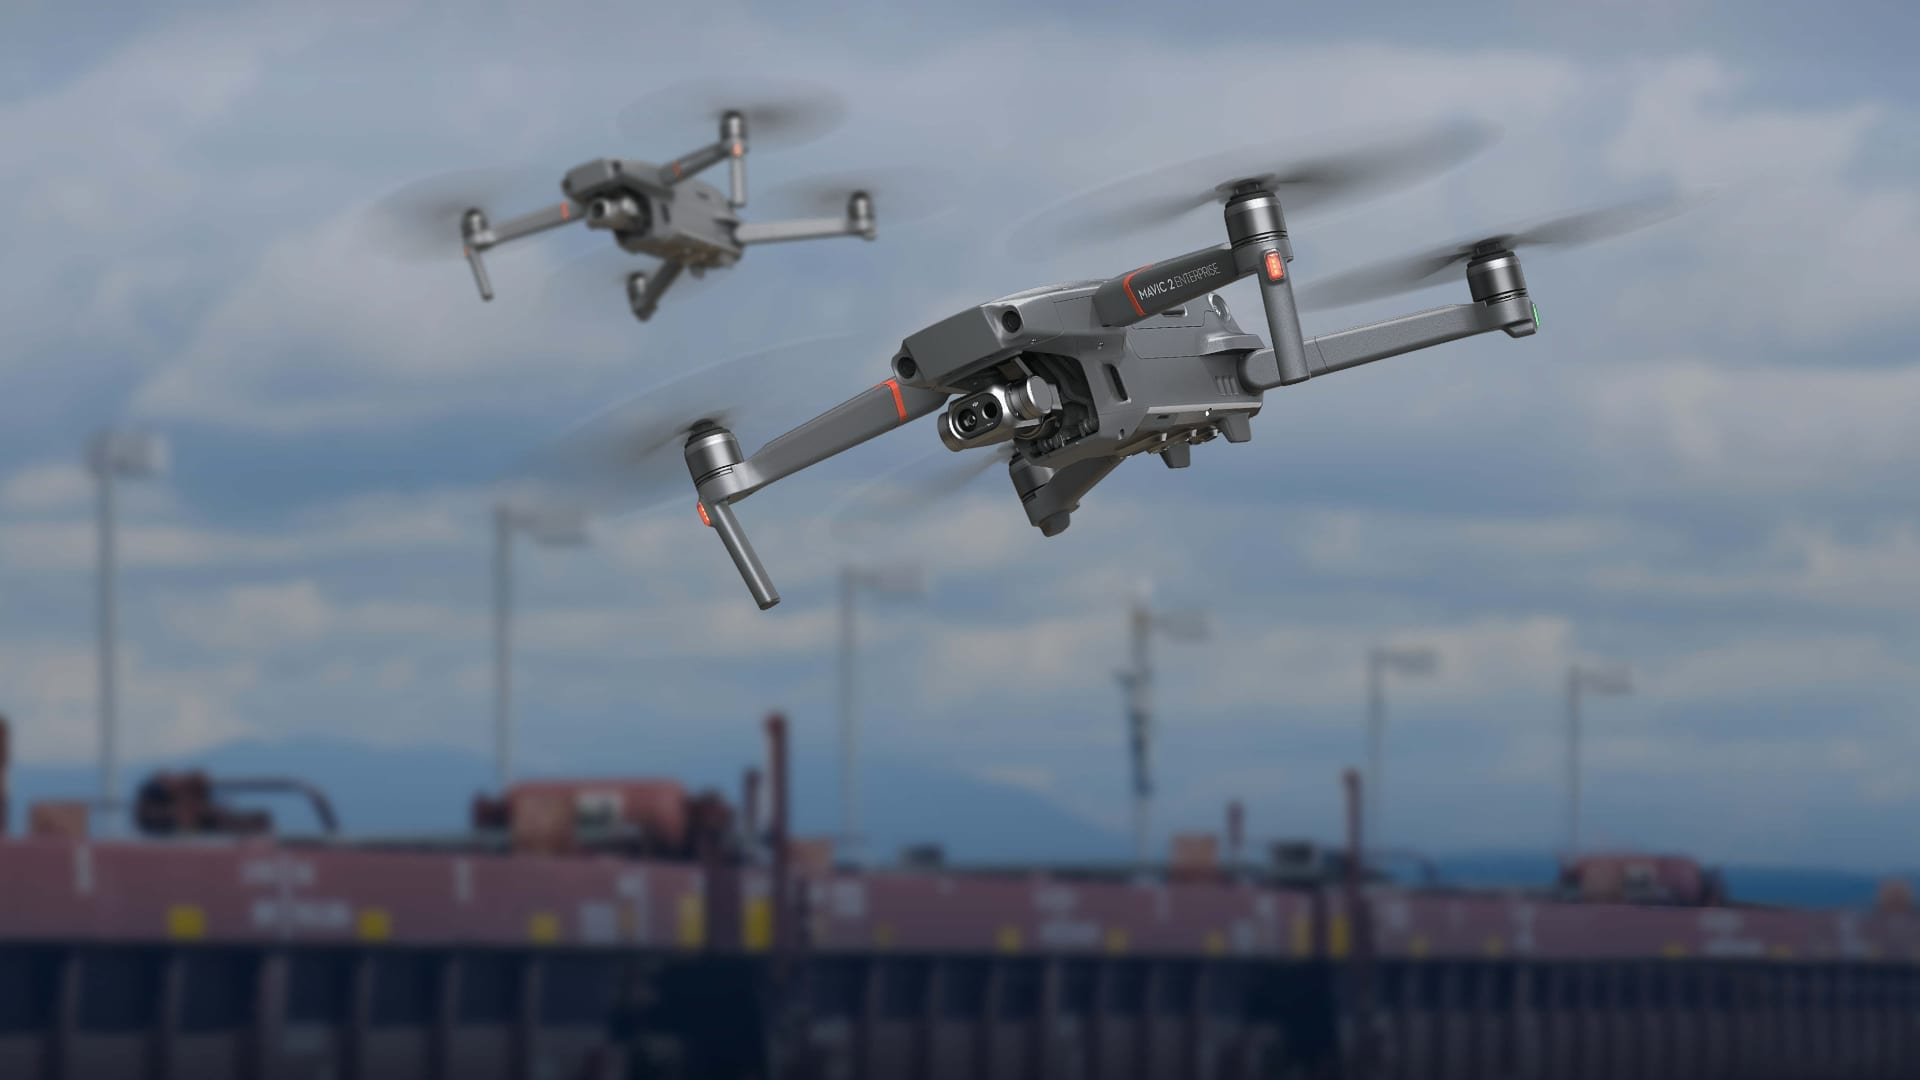 DJI commits 100 drones to US Disaster Relief Program to fight COVID-19